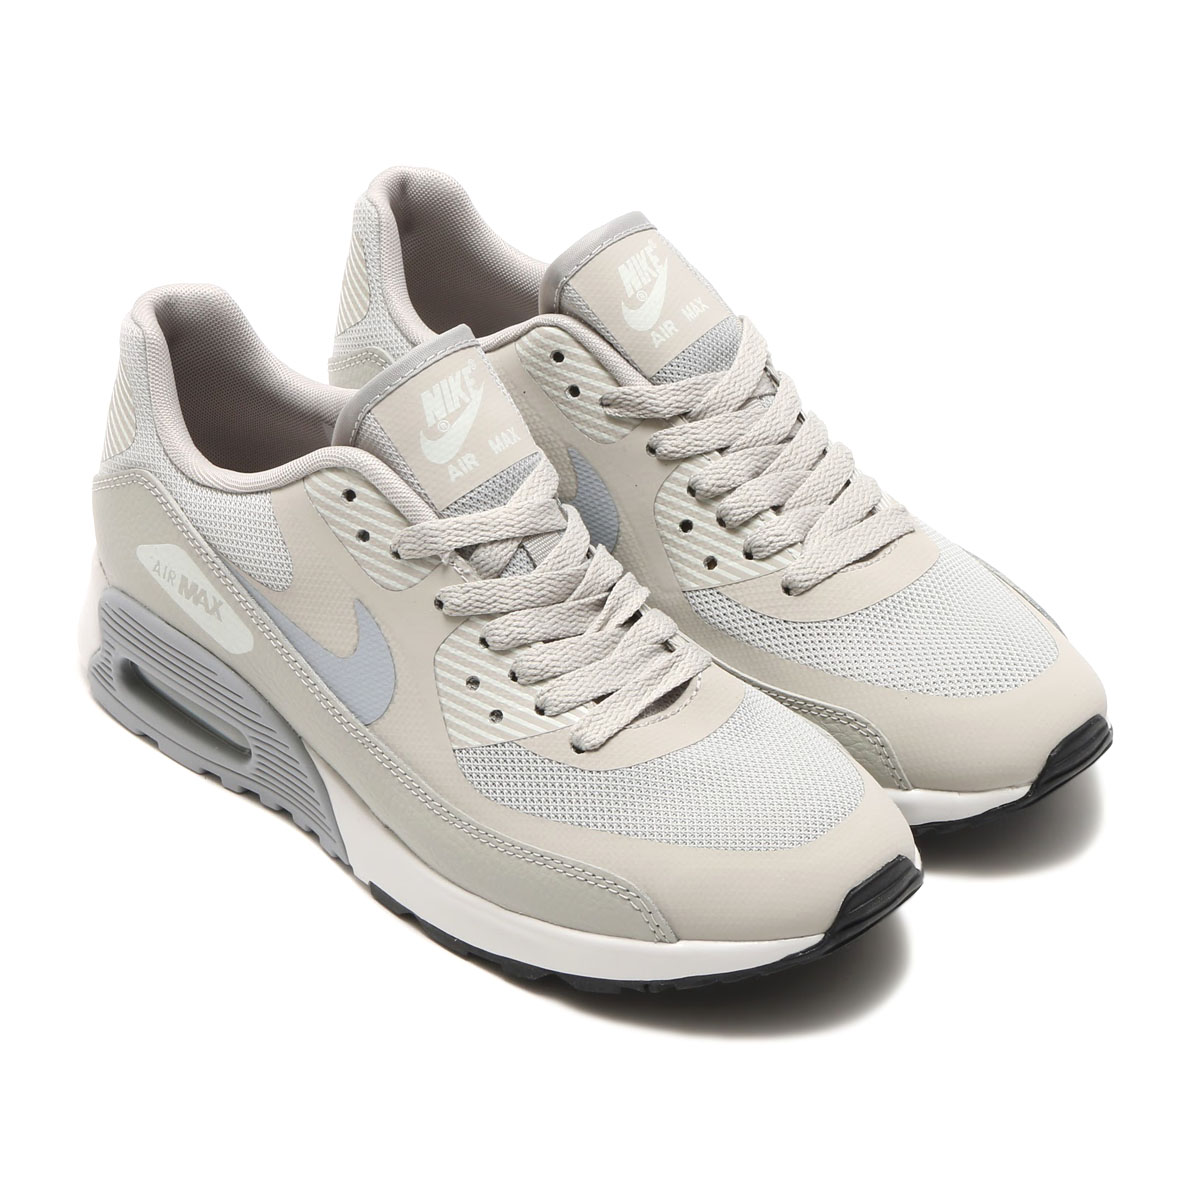 new arrival f7388 ef82b NIKE WMNS AIR MAX 90 ULTRA 2.0 (Nike women Air Max 90 ultra 2.0) PALE  GREY/WOLF GREY-SUMMIT WHITE-BLACK 17SU-I